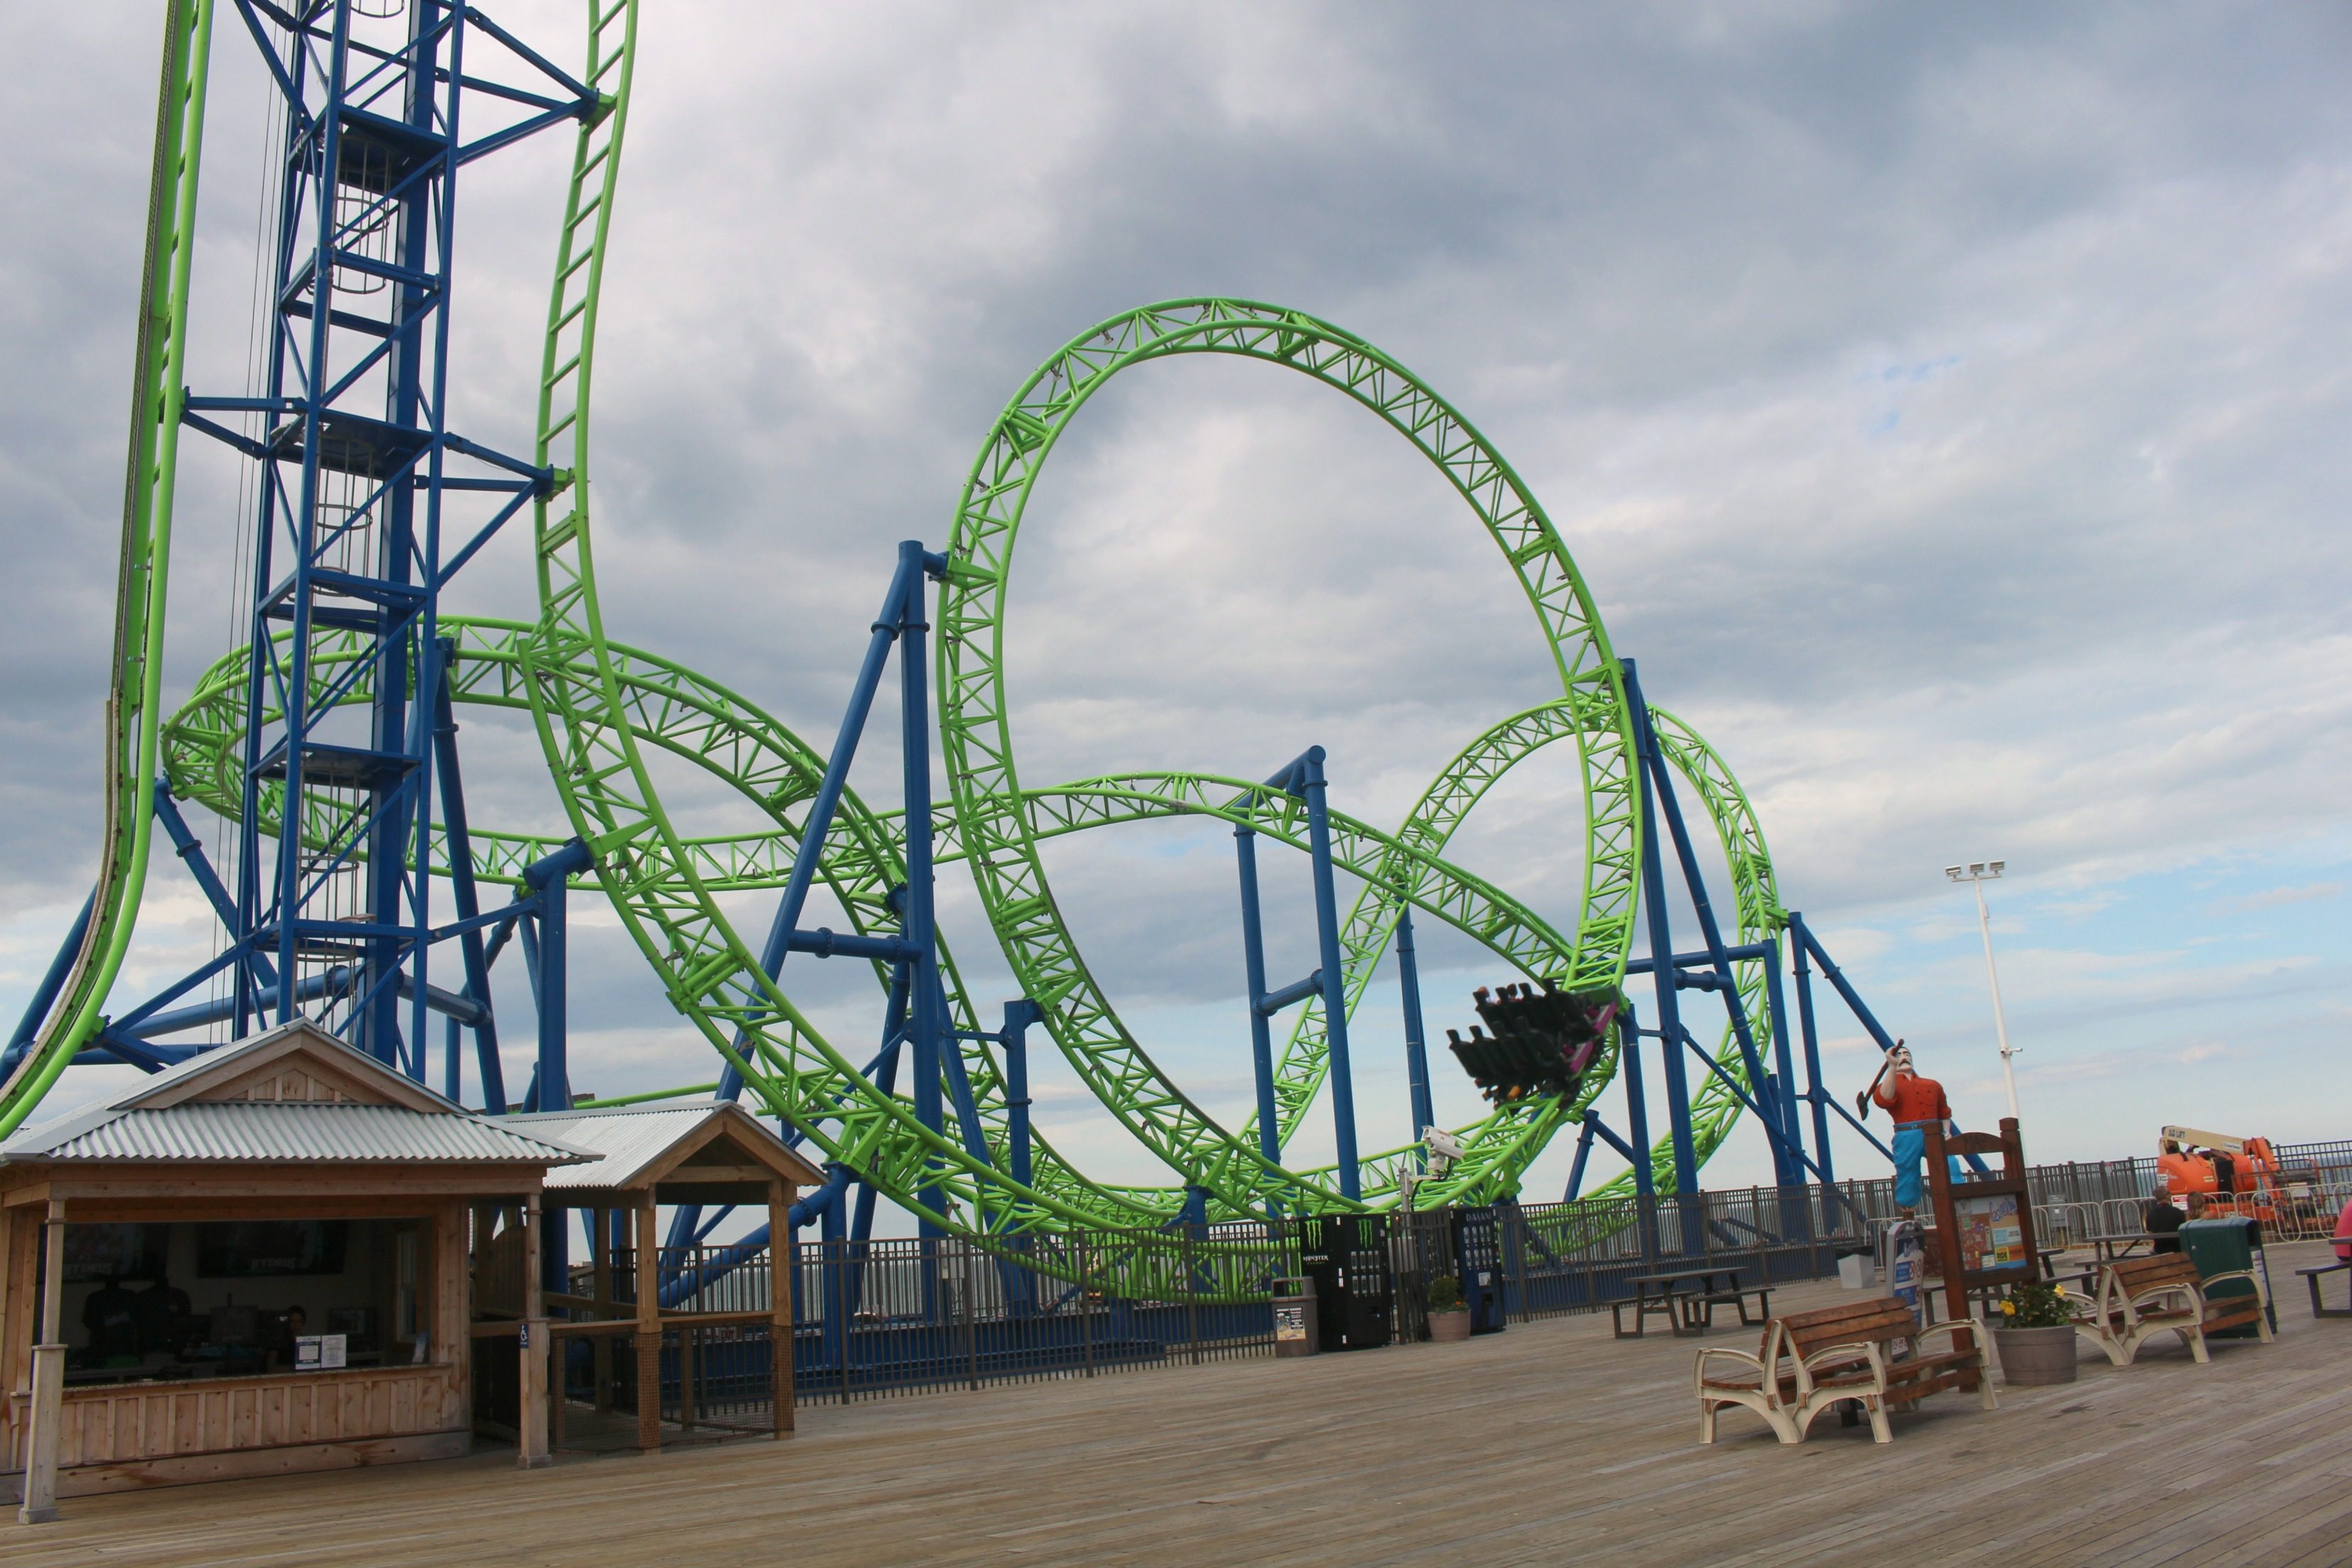 Hydrus Roller Coaster at Casino Pier